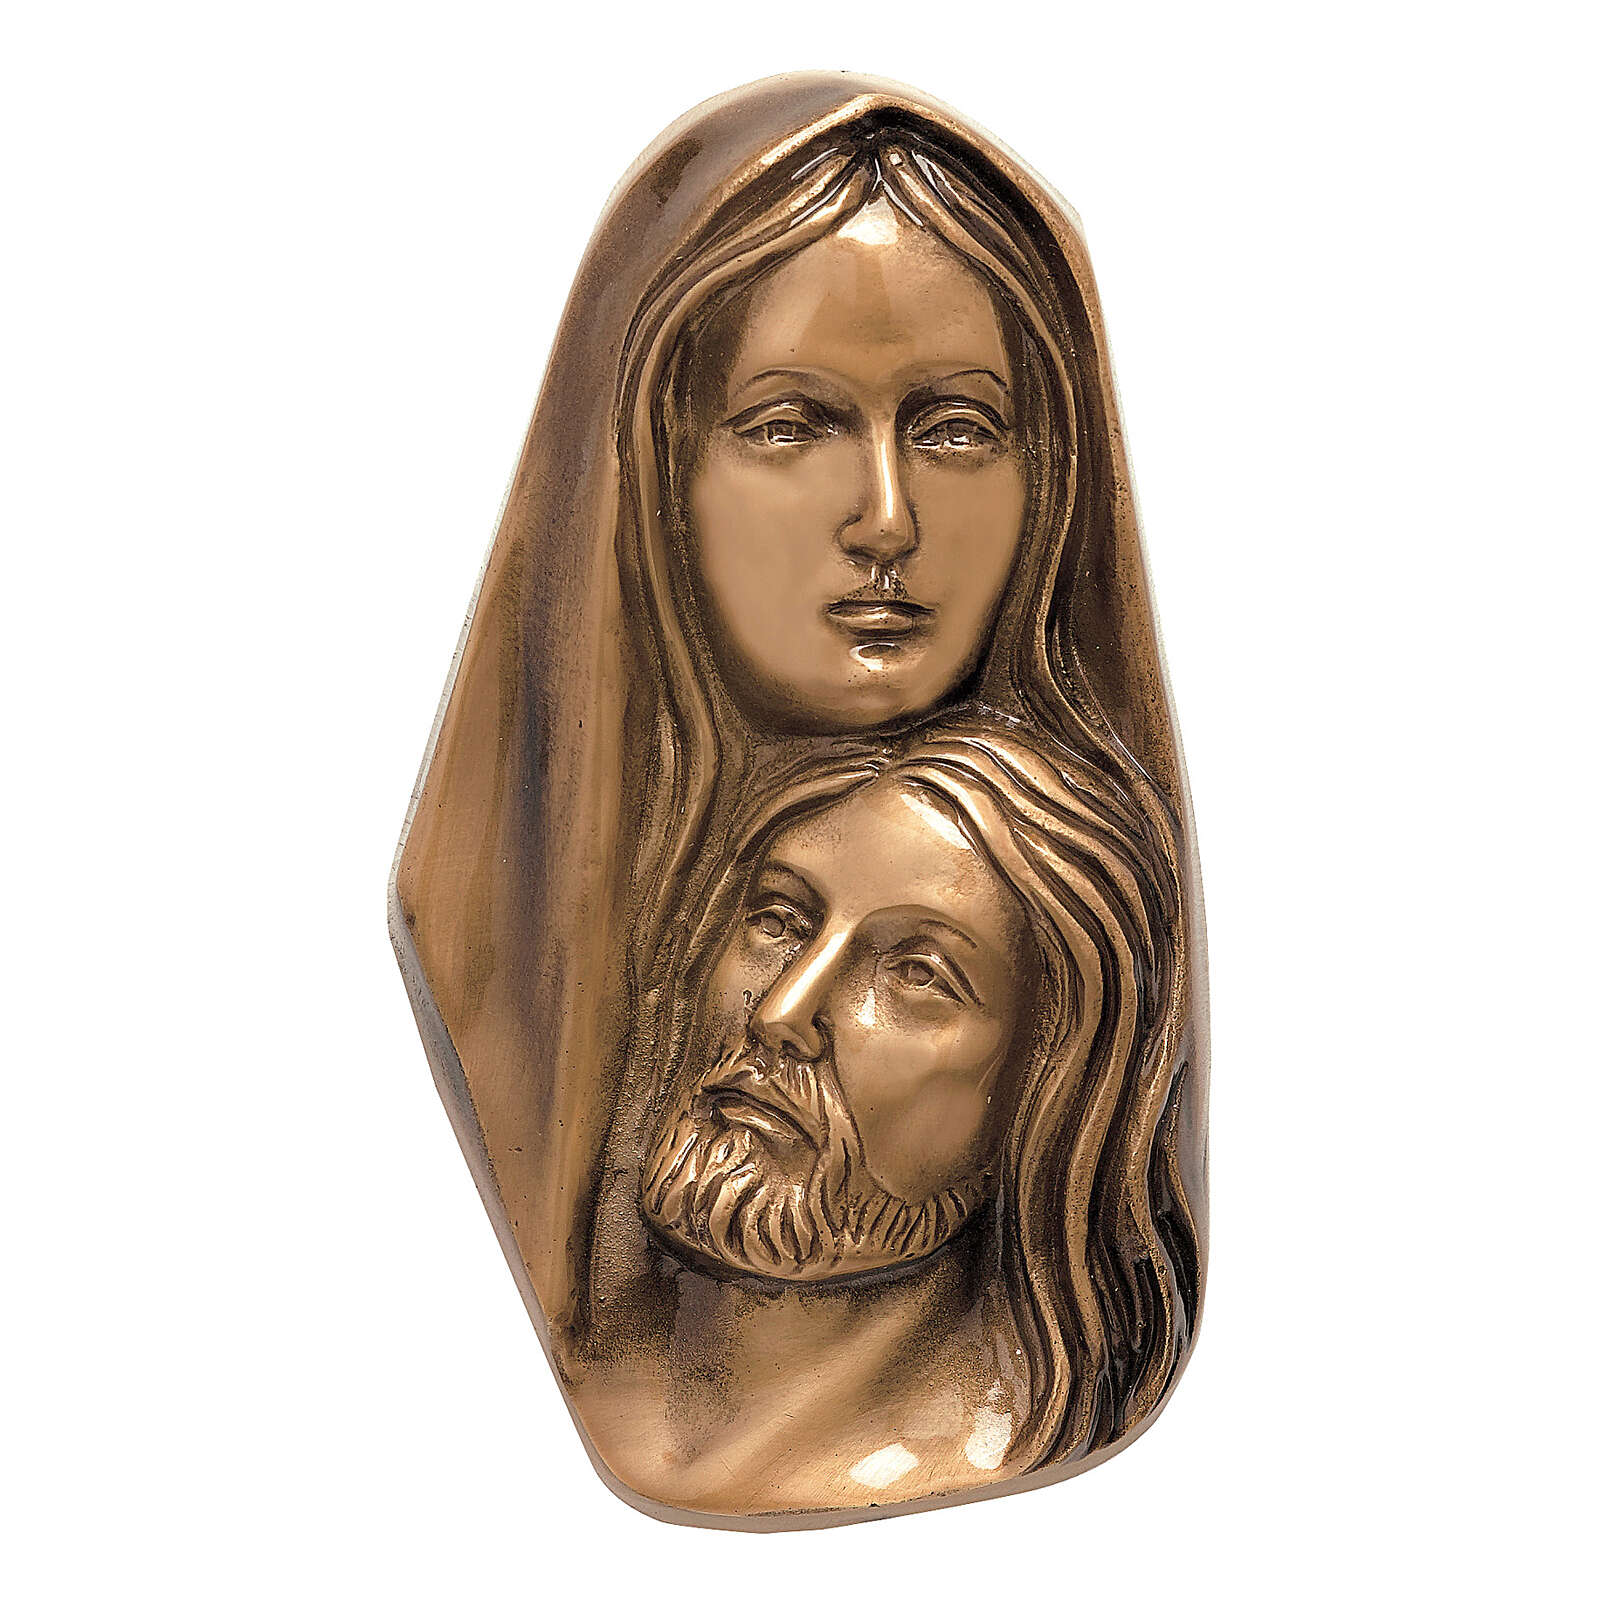 Pieta plaque of Christ, 23 cm for OUTDOORS 3